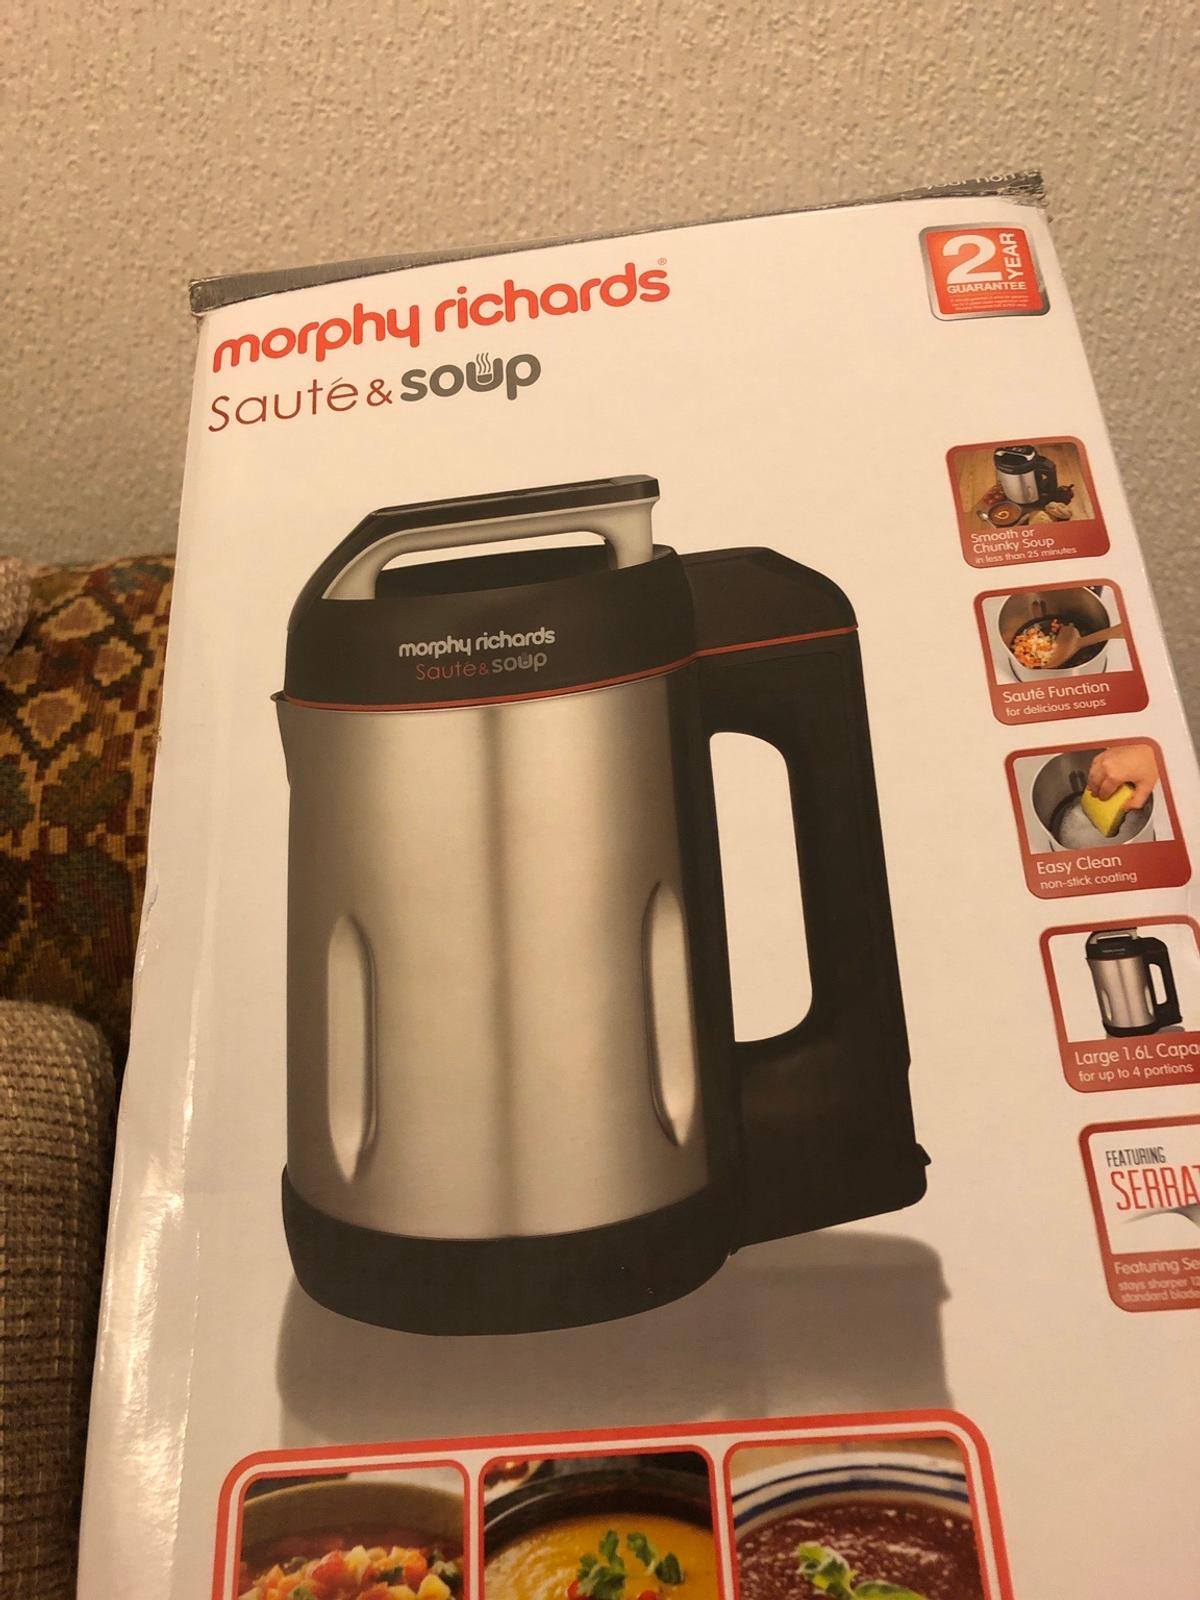 Morphy Richards Soup Maker In Tq1 Torquay For 40 00 For Sale Shpock Make soups to your own recipes and simply select the smooth or chunky soup setting to make your favourite soups. shpock